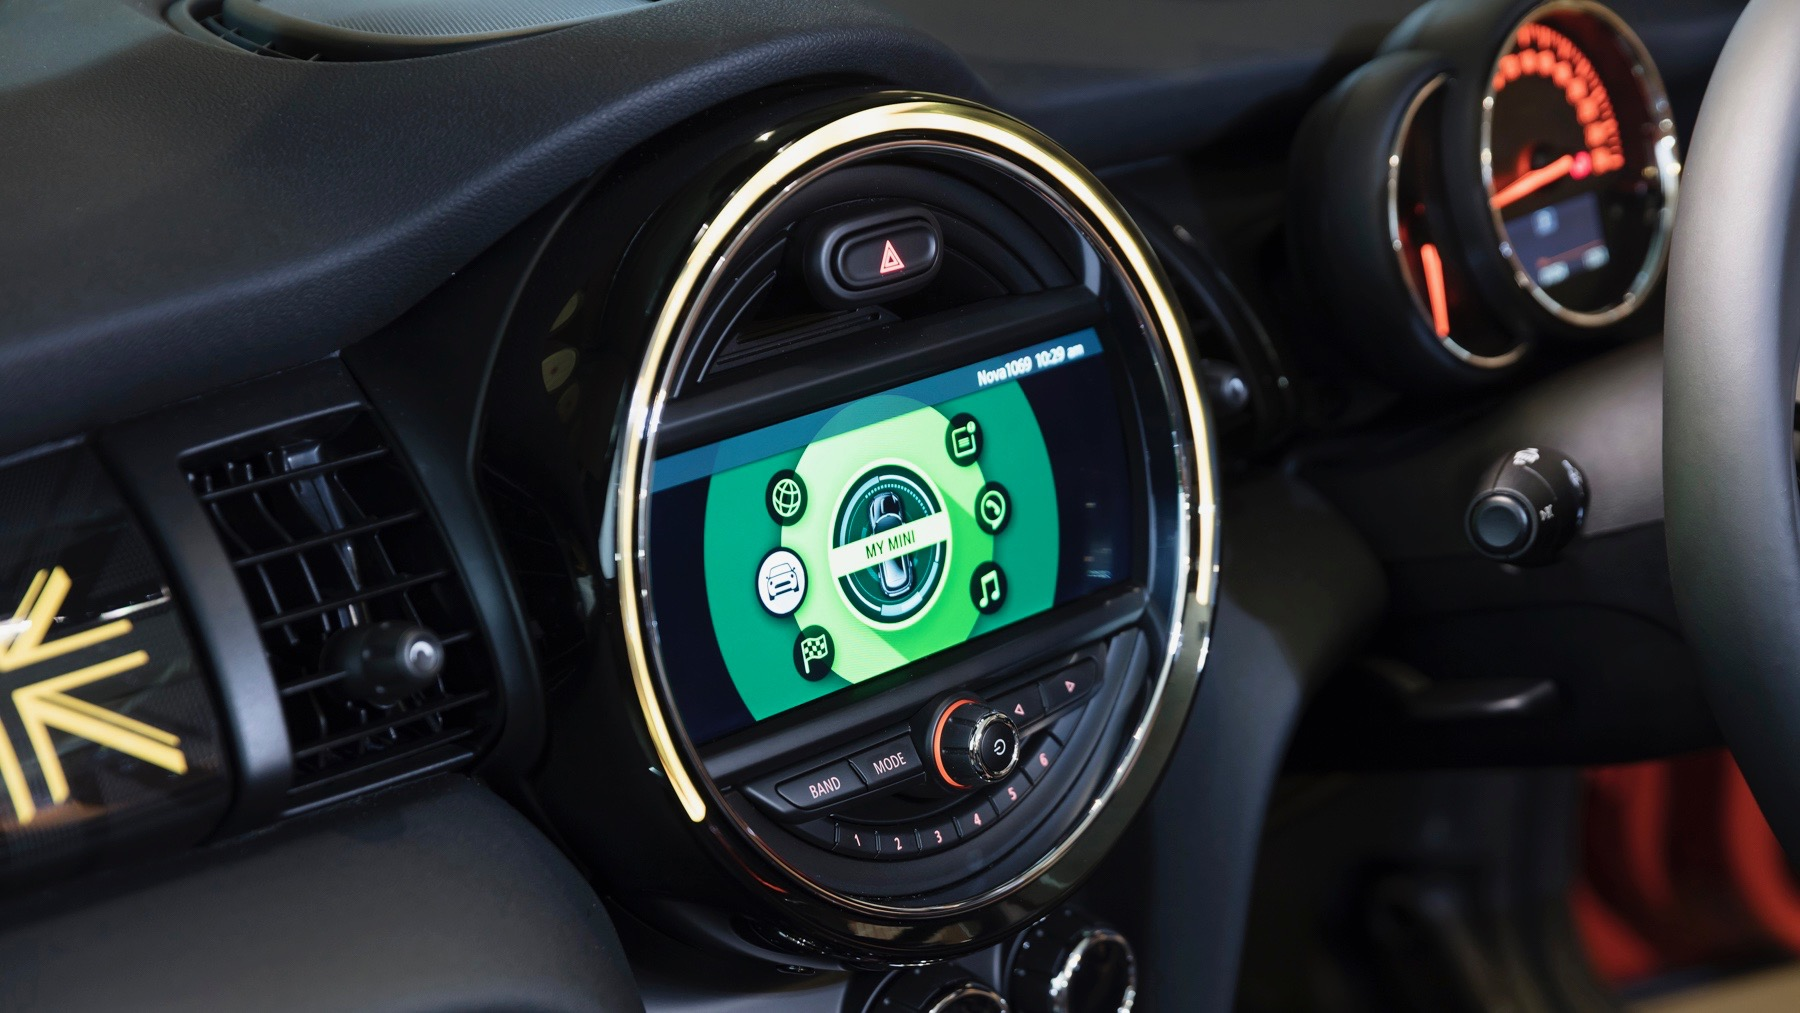 2018 MINI Cooper S infotainment